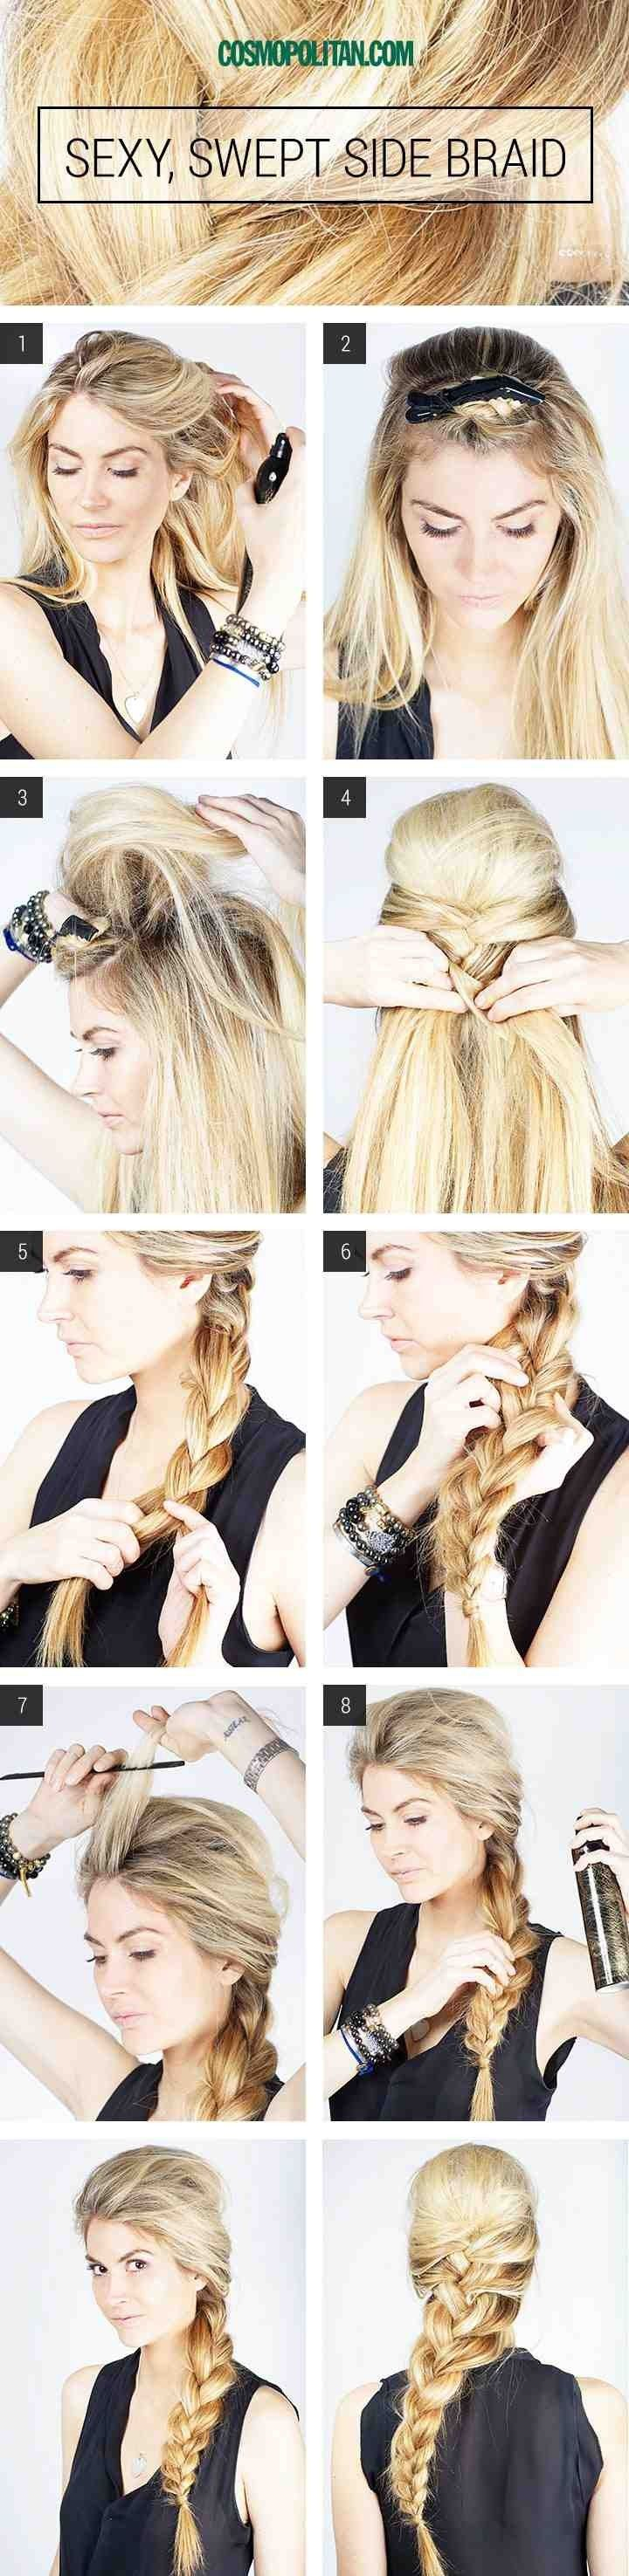 Versatile Wedding Hairstyles For Long Hair | Side swept, Beauty ...